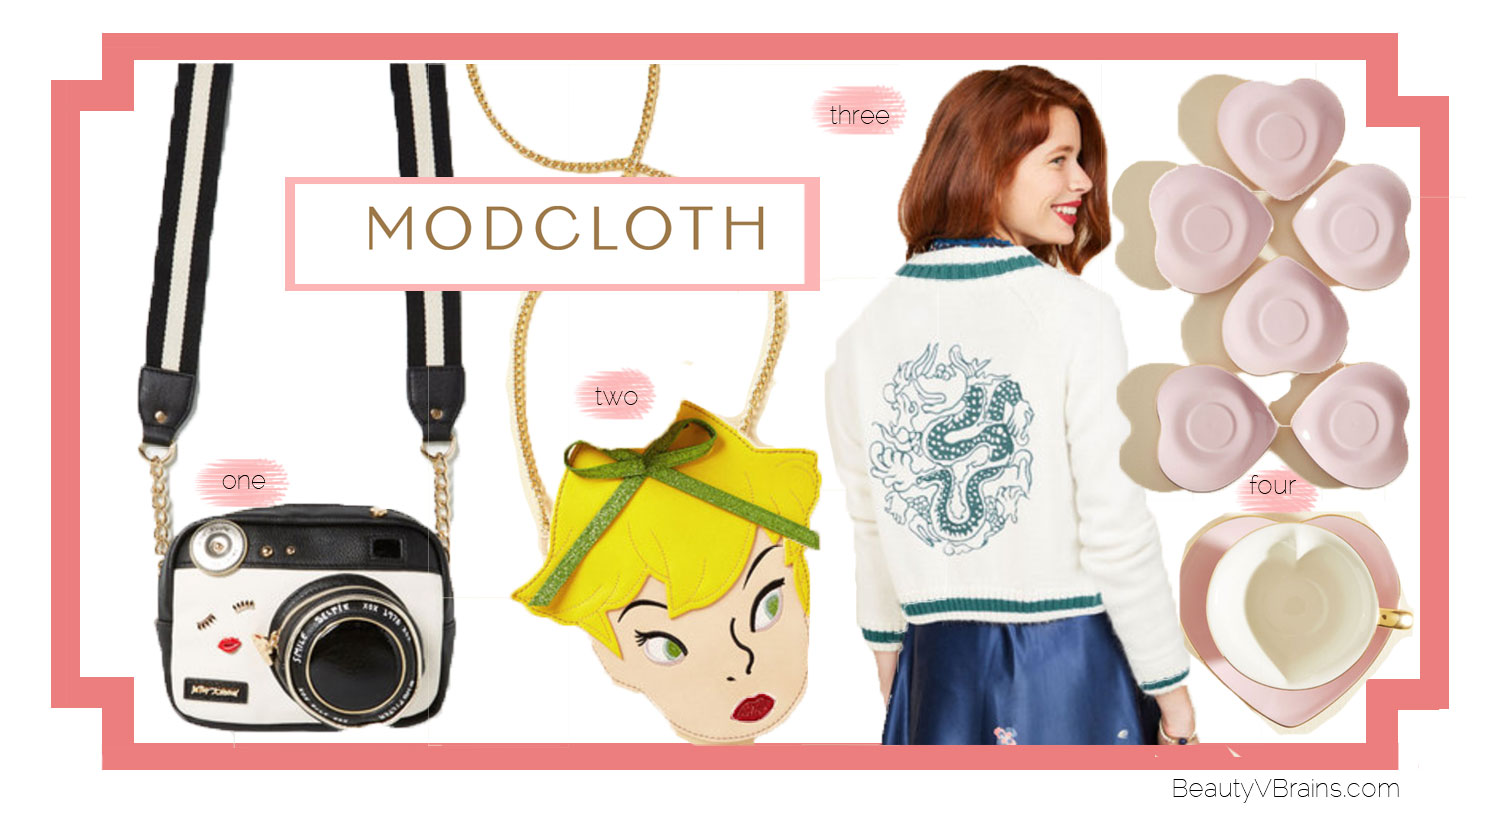 Modcloth Black Friday Cyber Monday sale and deals 2016